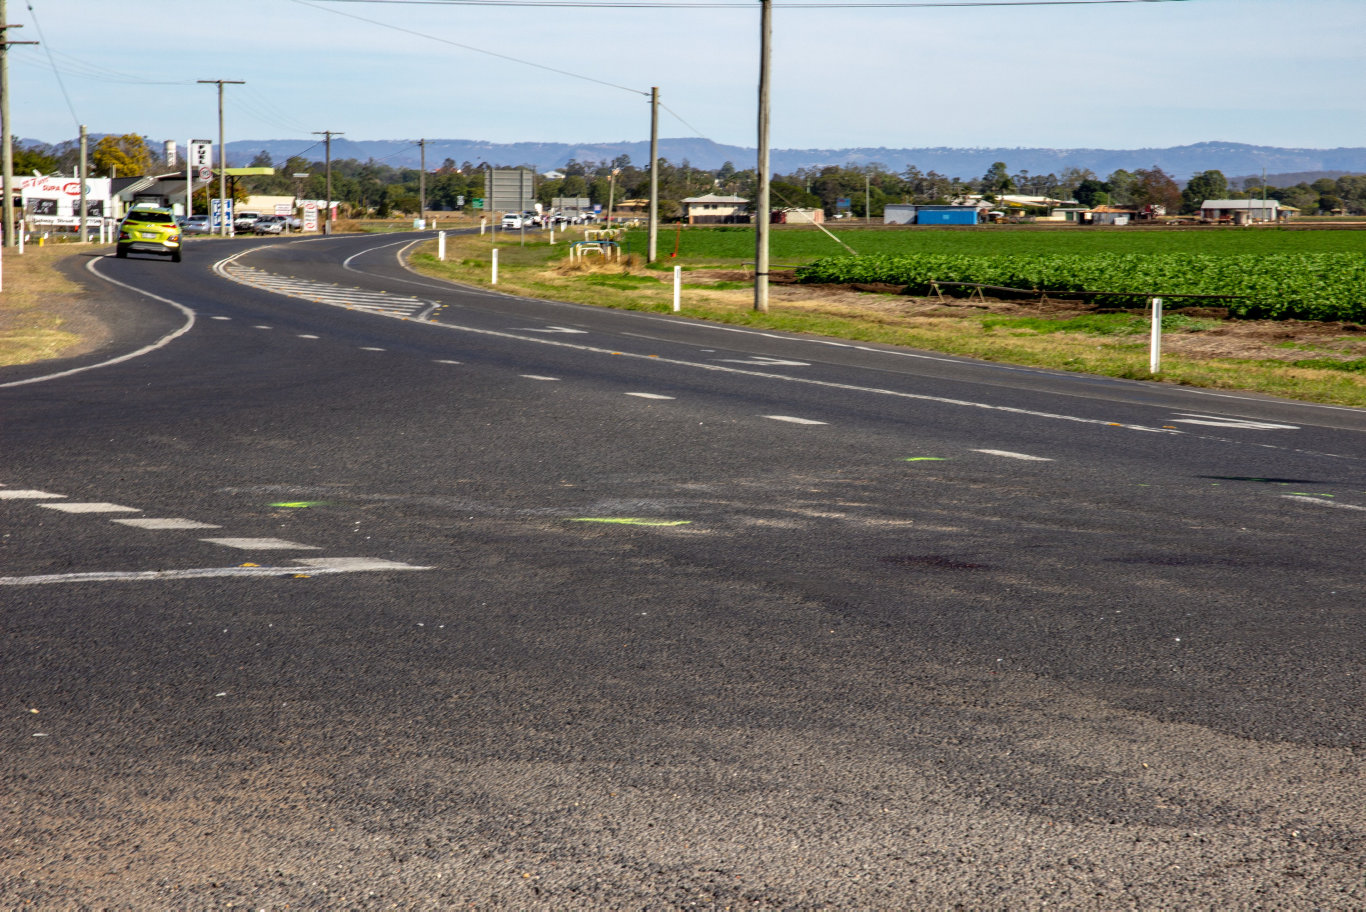 Evidence markings at the site of where a fatal accident occurred at the intersection of Eastern Drive and Gatton-Laidley Rd on the night on July 12, 2019